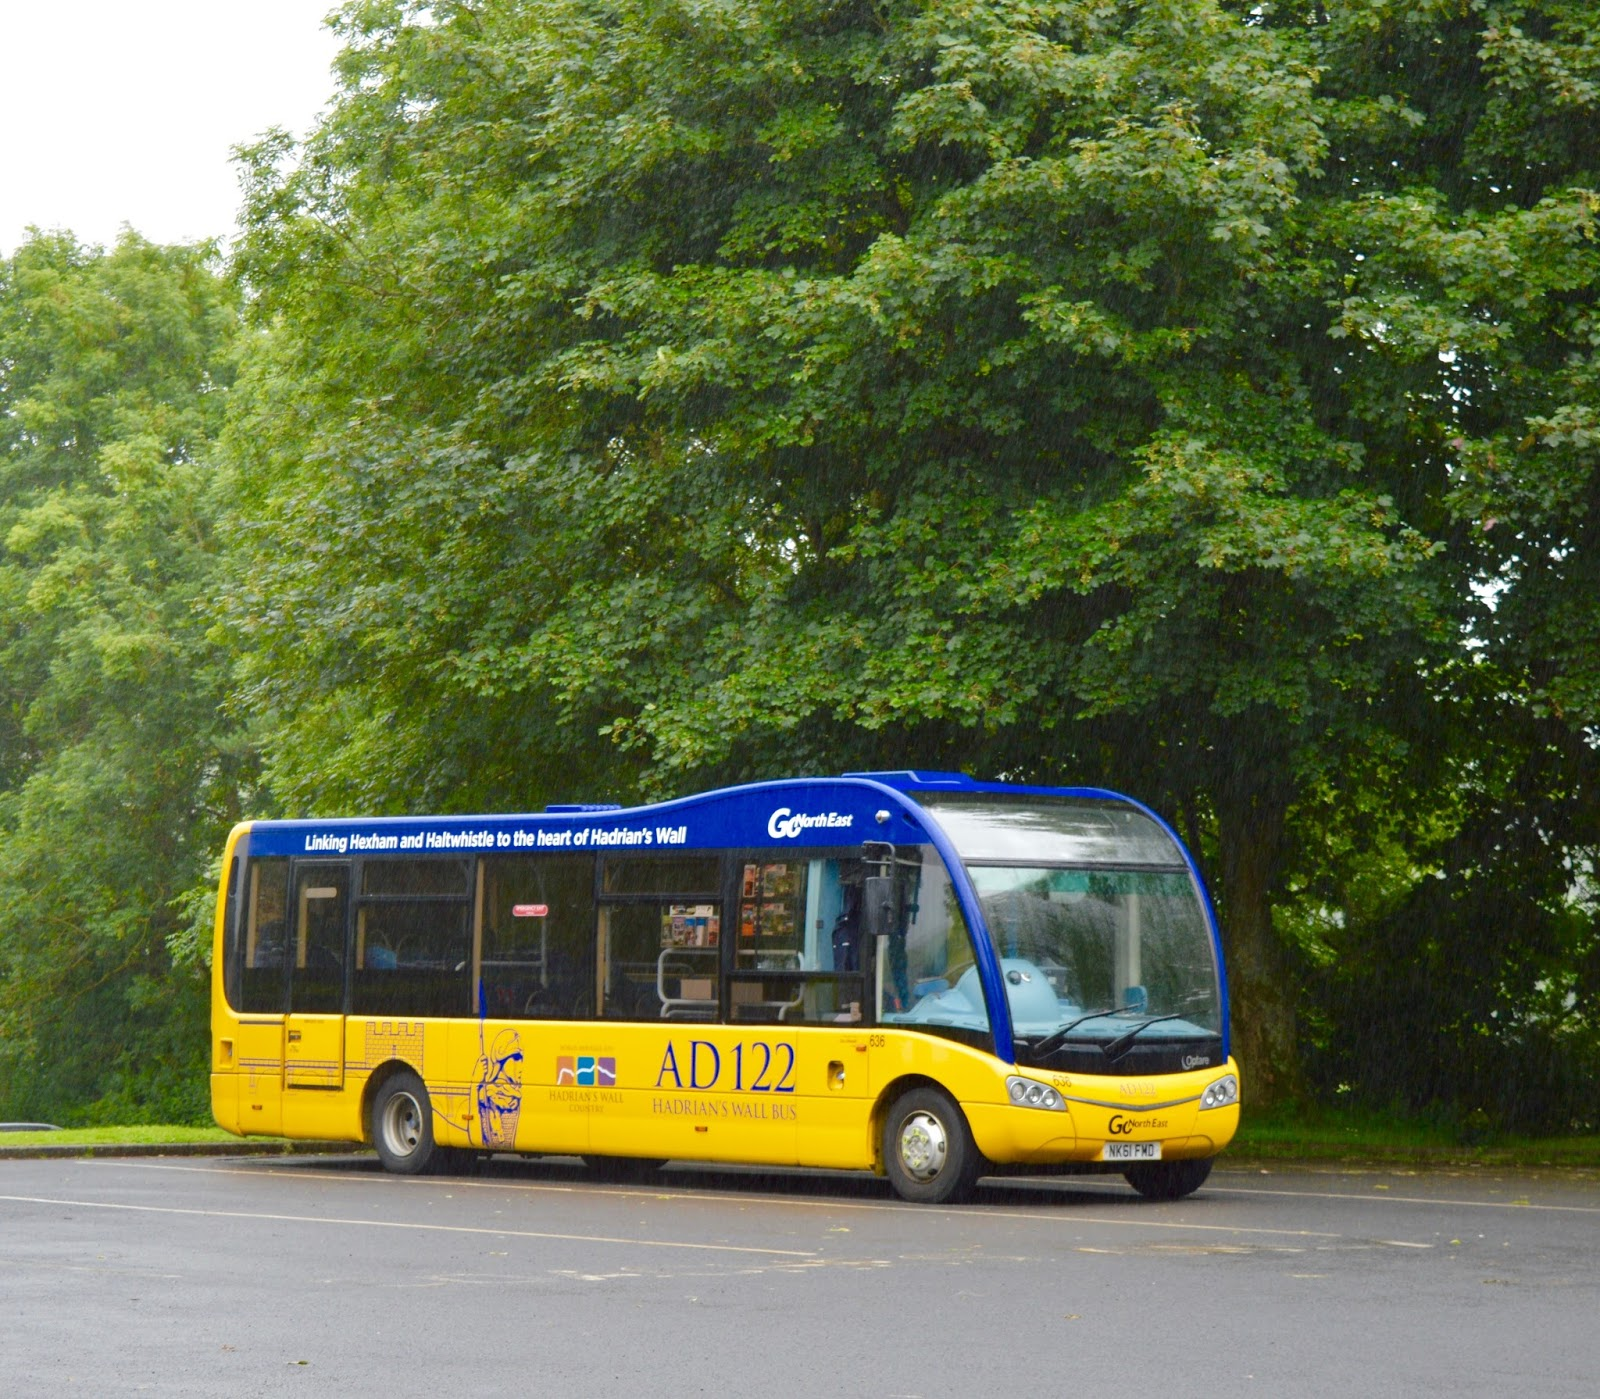 Hadrian S Wall Bus Ad122 Timetable Fares 2019